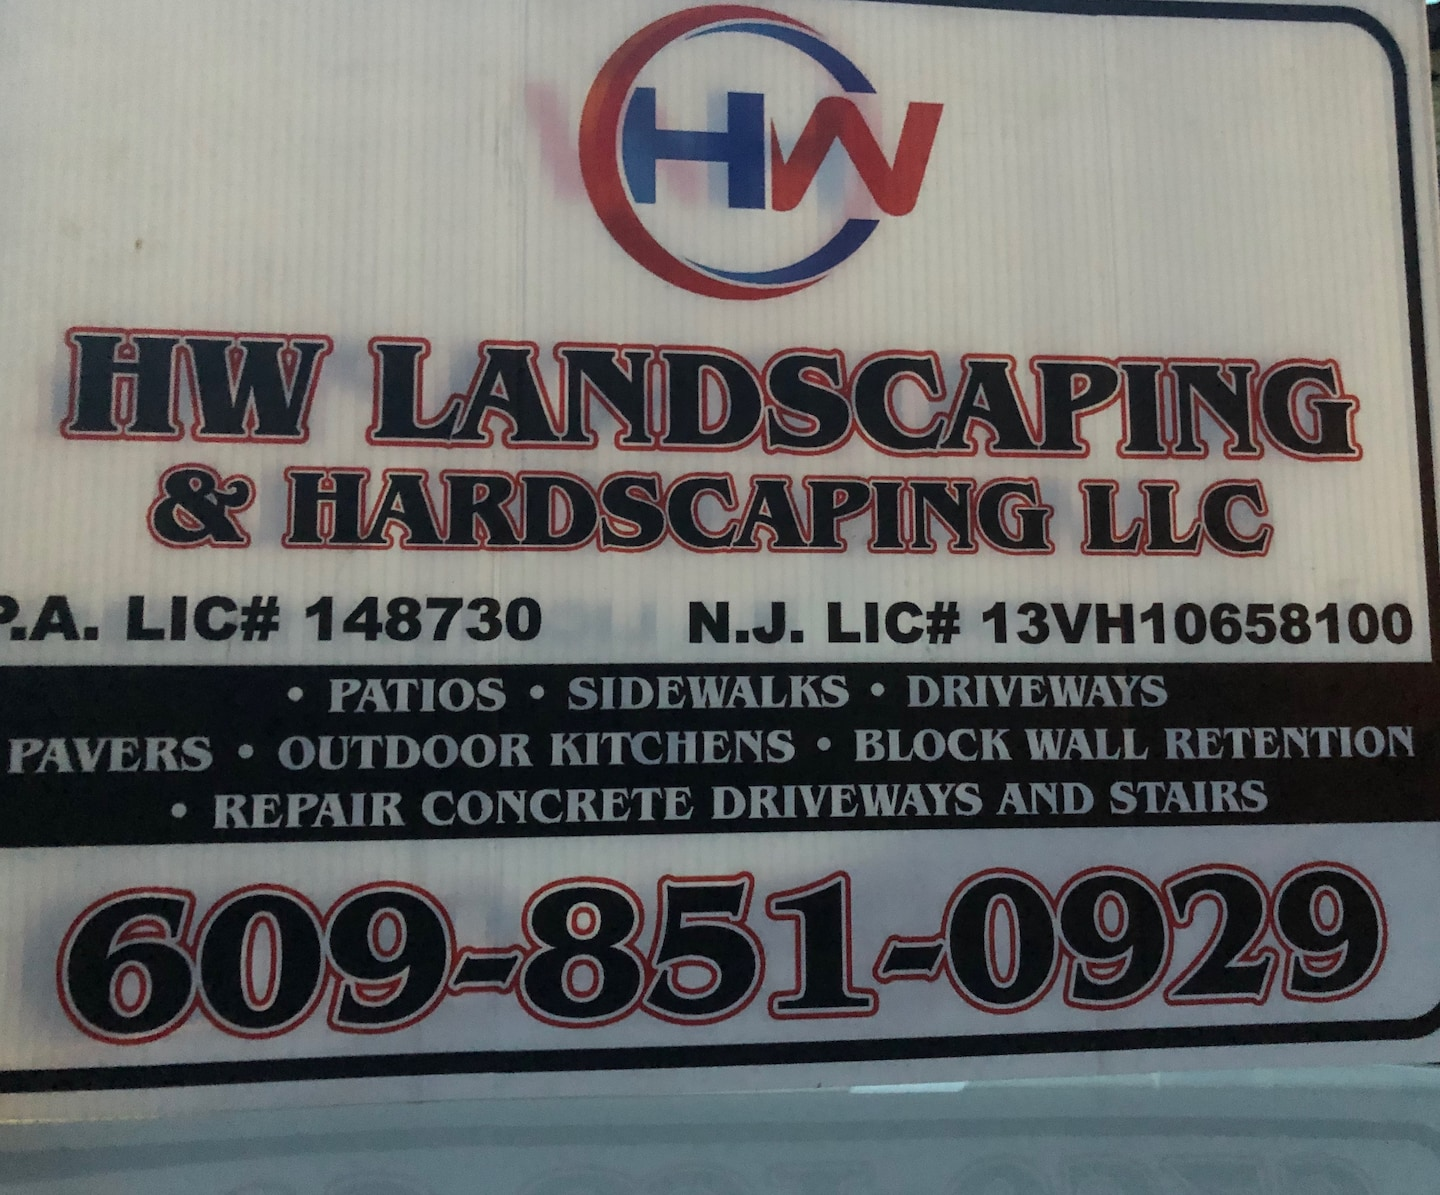 HW Landscaping and Hardscaping